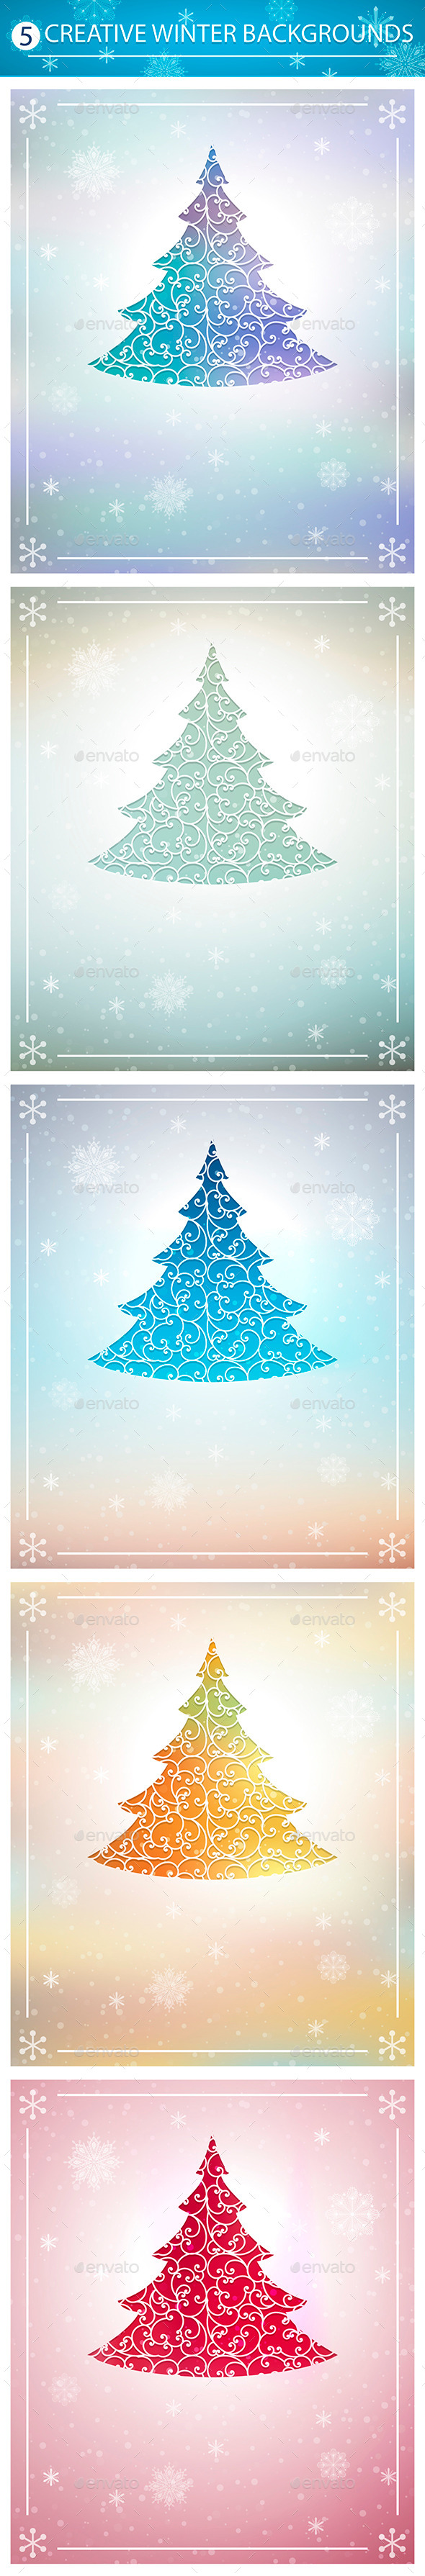 Winter Backgrounds Set - New Year Seasons/Holidays